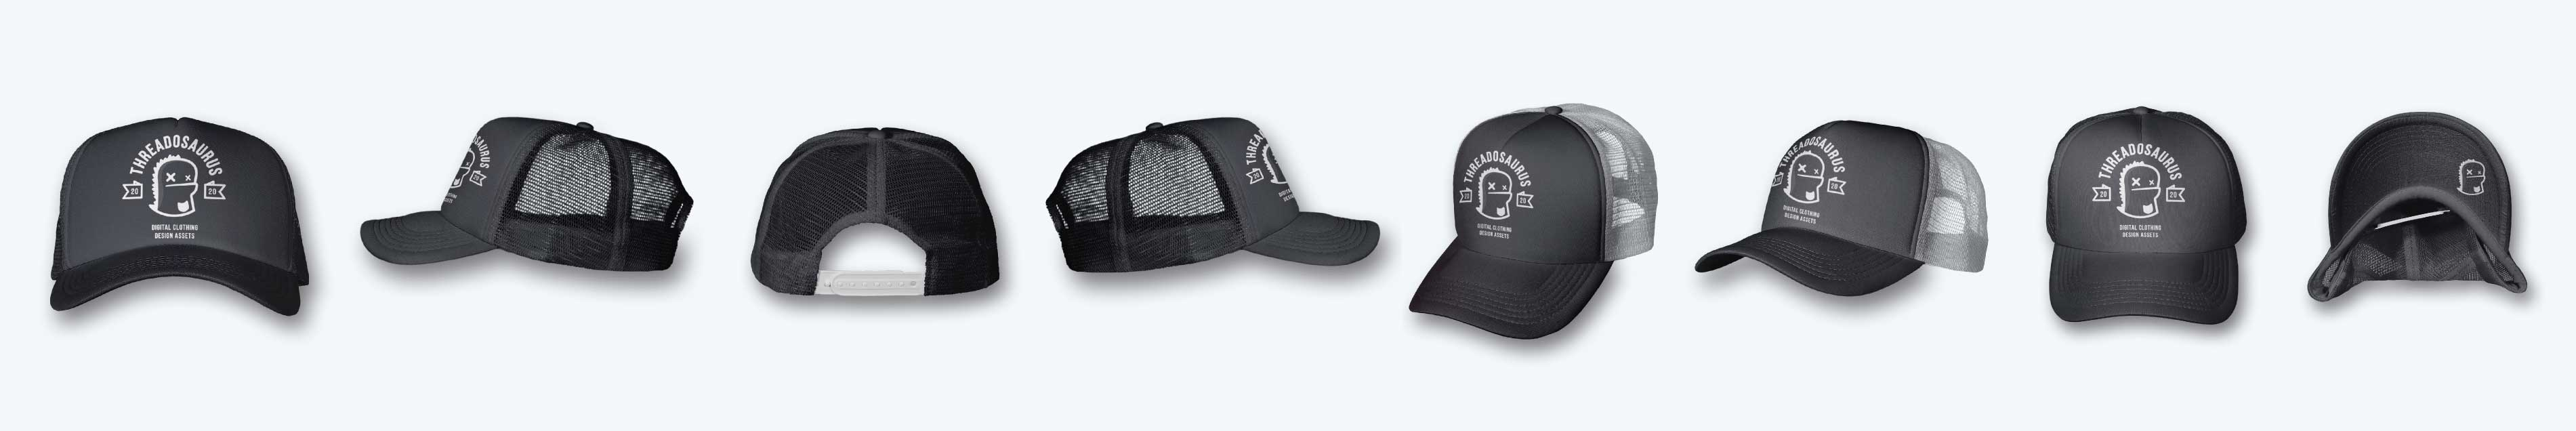 ghosted foam mesh trucker cap mockup front back side angled